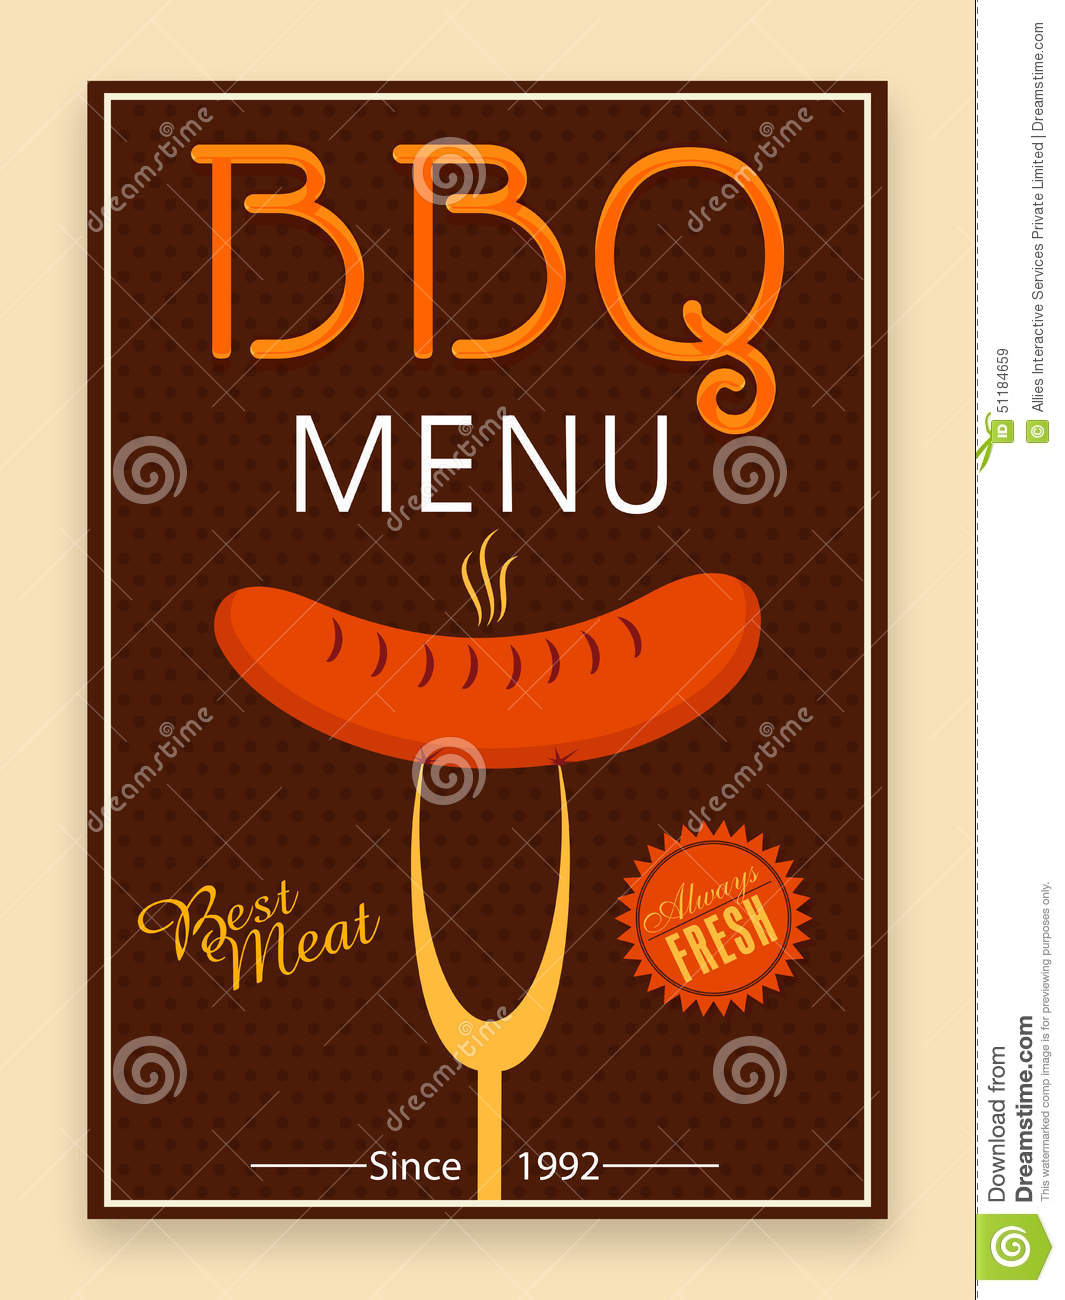 bbq menu card template or flyer design stock photo image 51184659. Black Bedroom Furniture Sets. Home Design Ideas